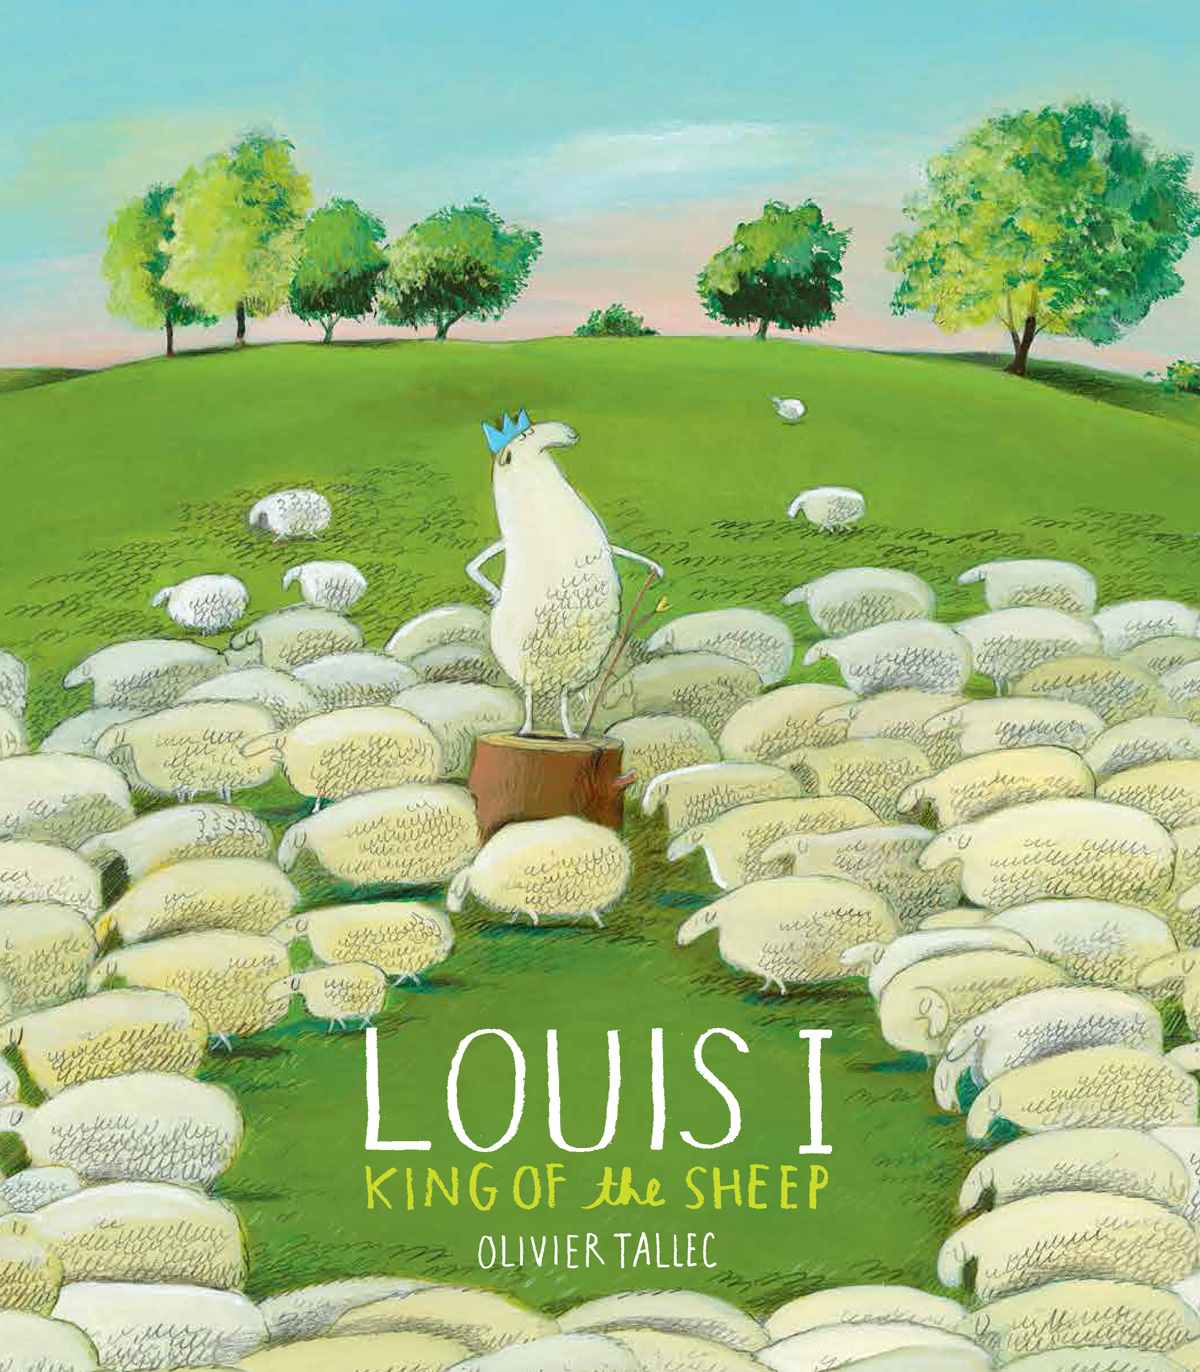 Louis I, King of the Sheep: An Illustrated Parable of How Power Changes Those in Power